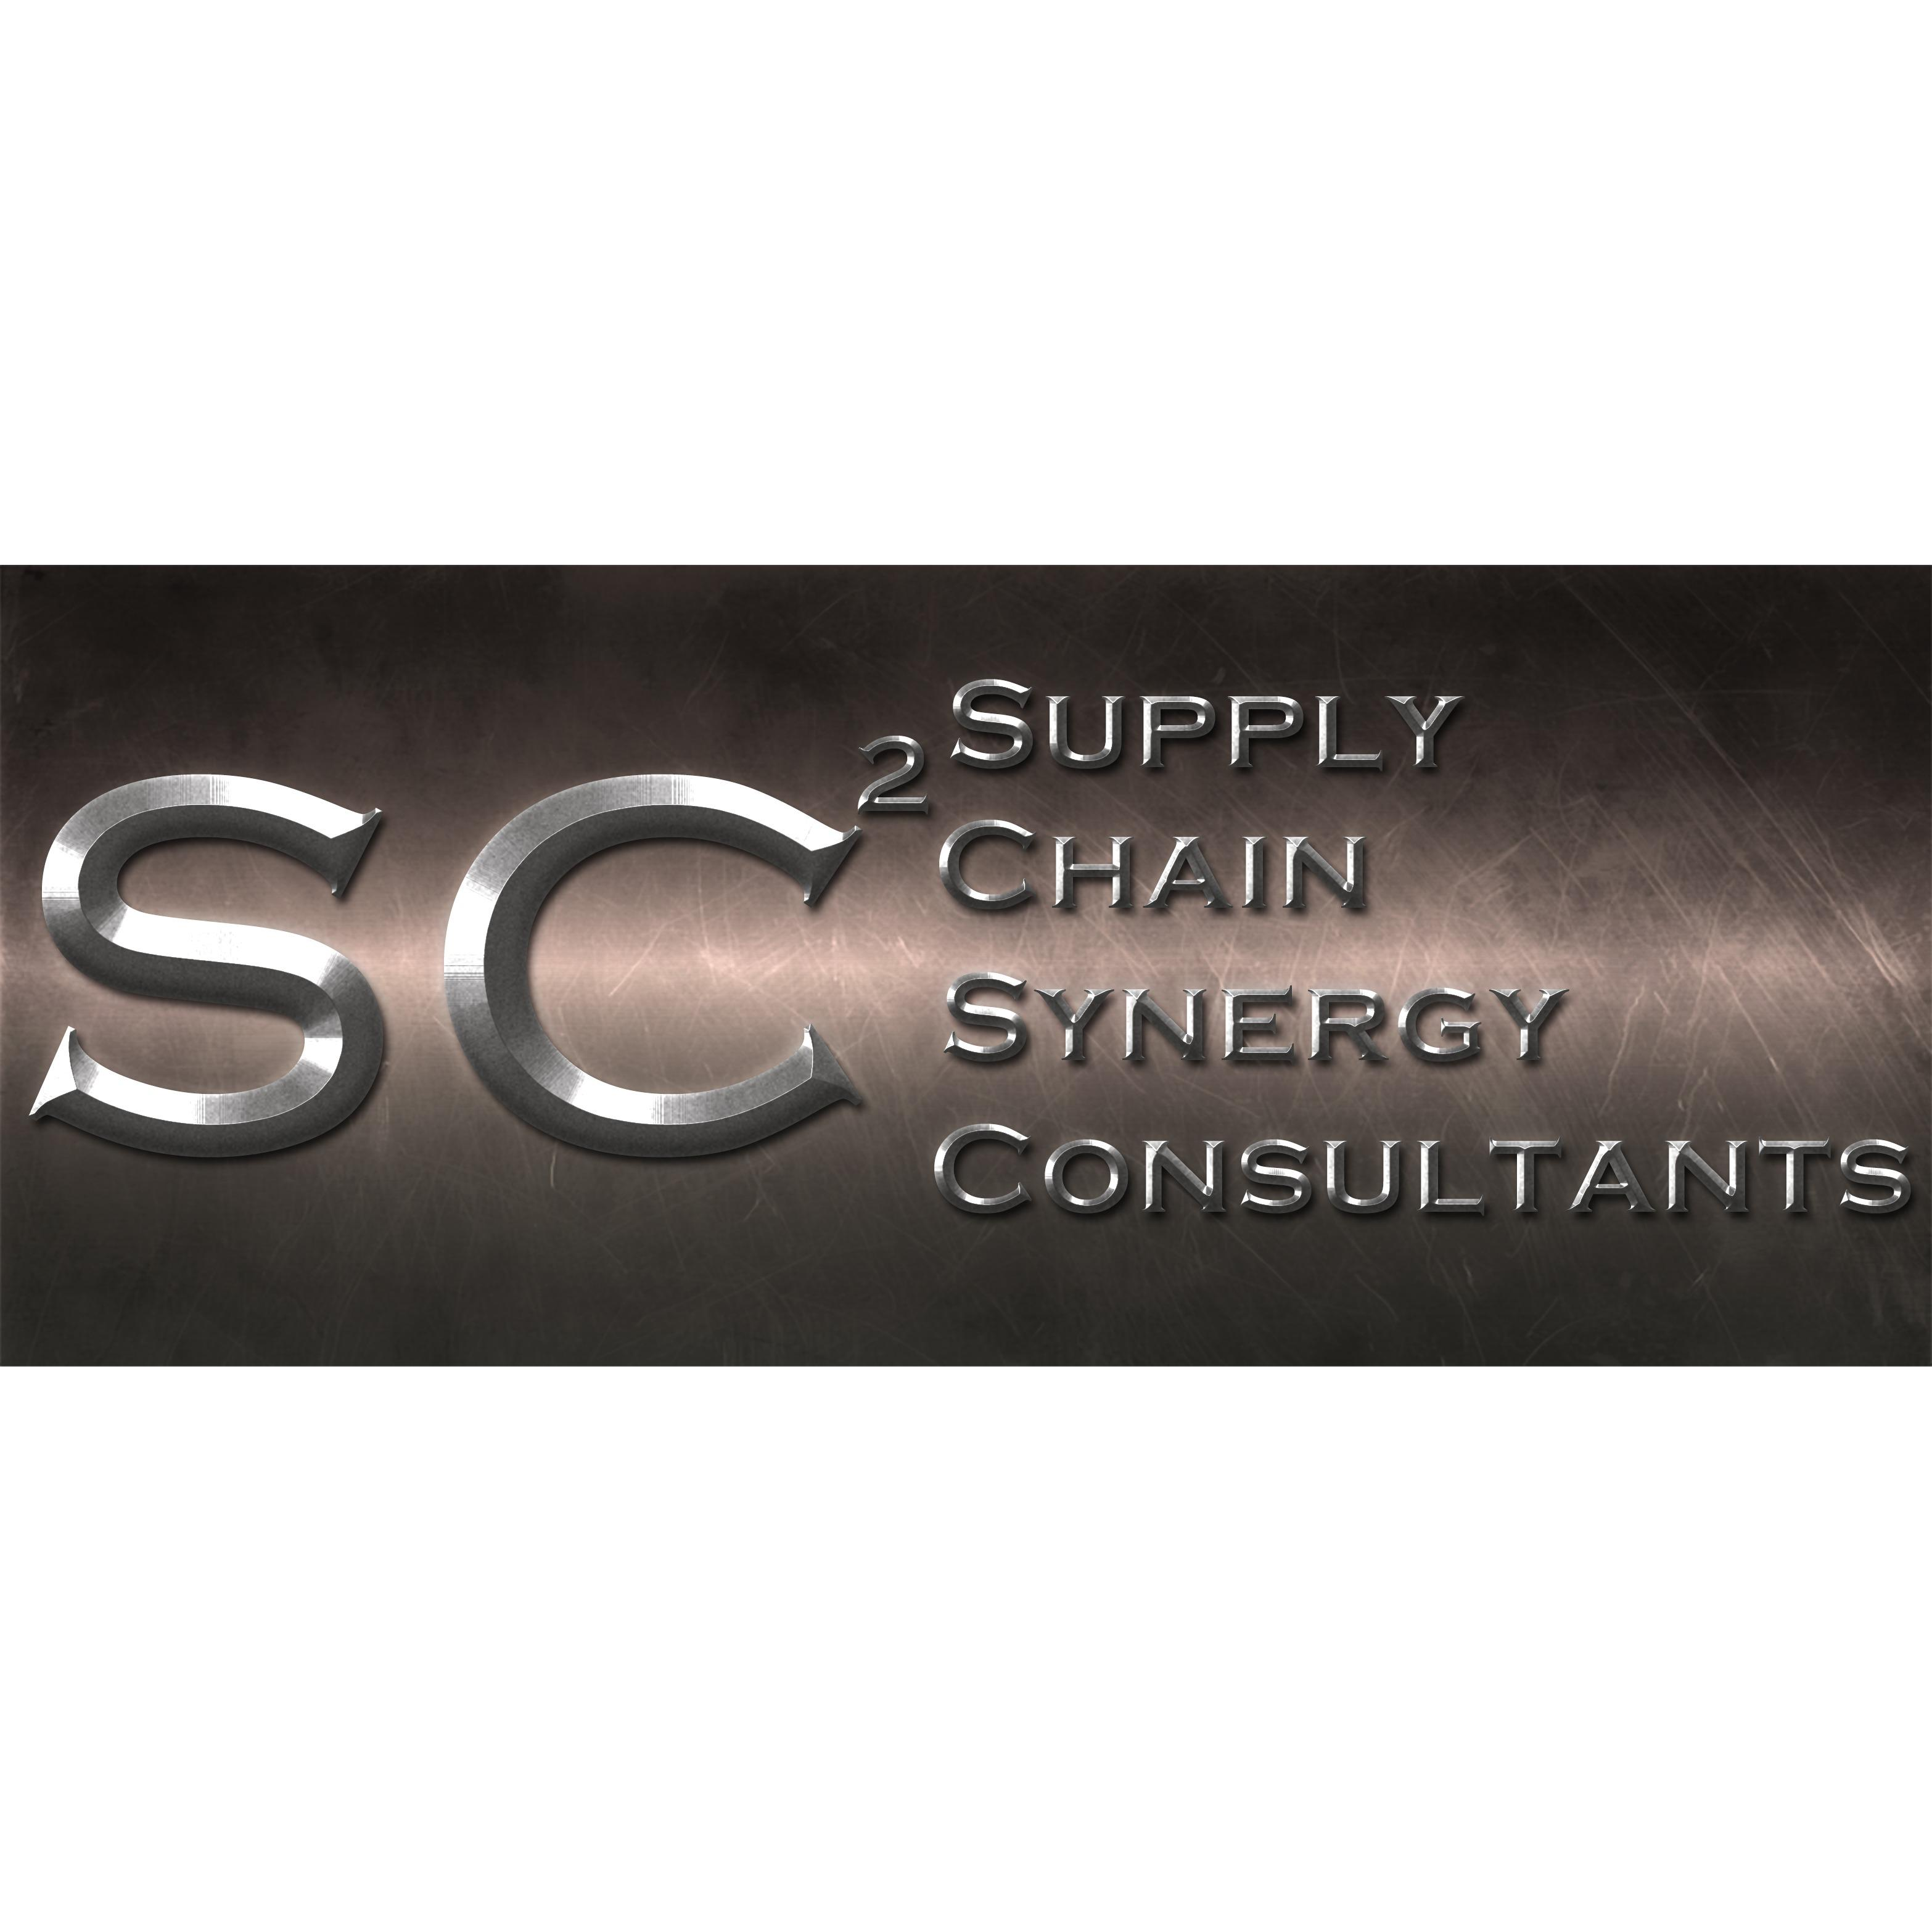 Supply Chain Synergy Consultants